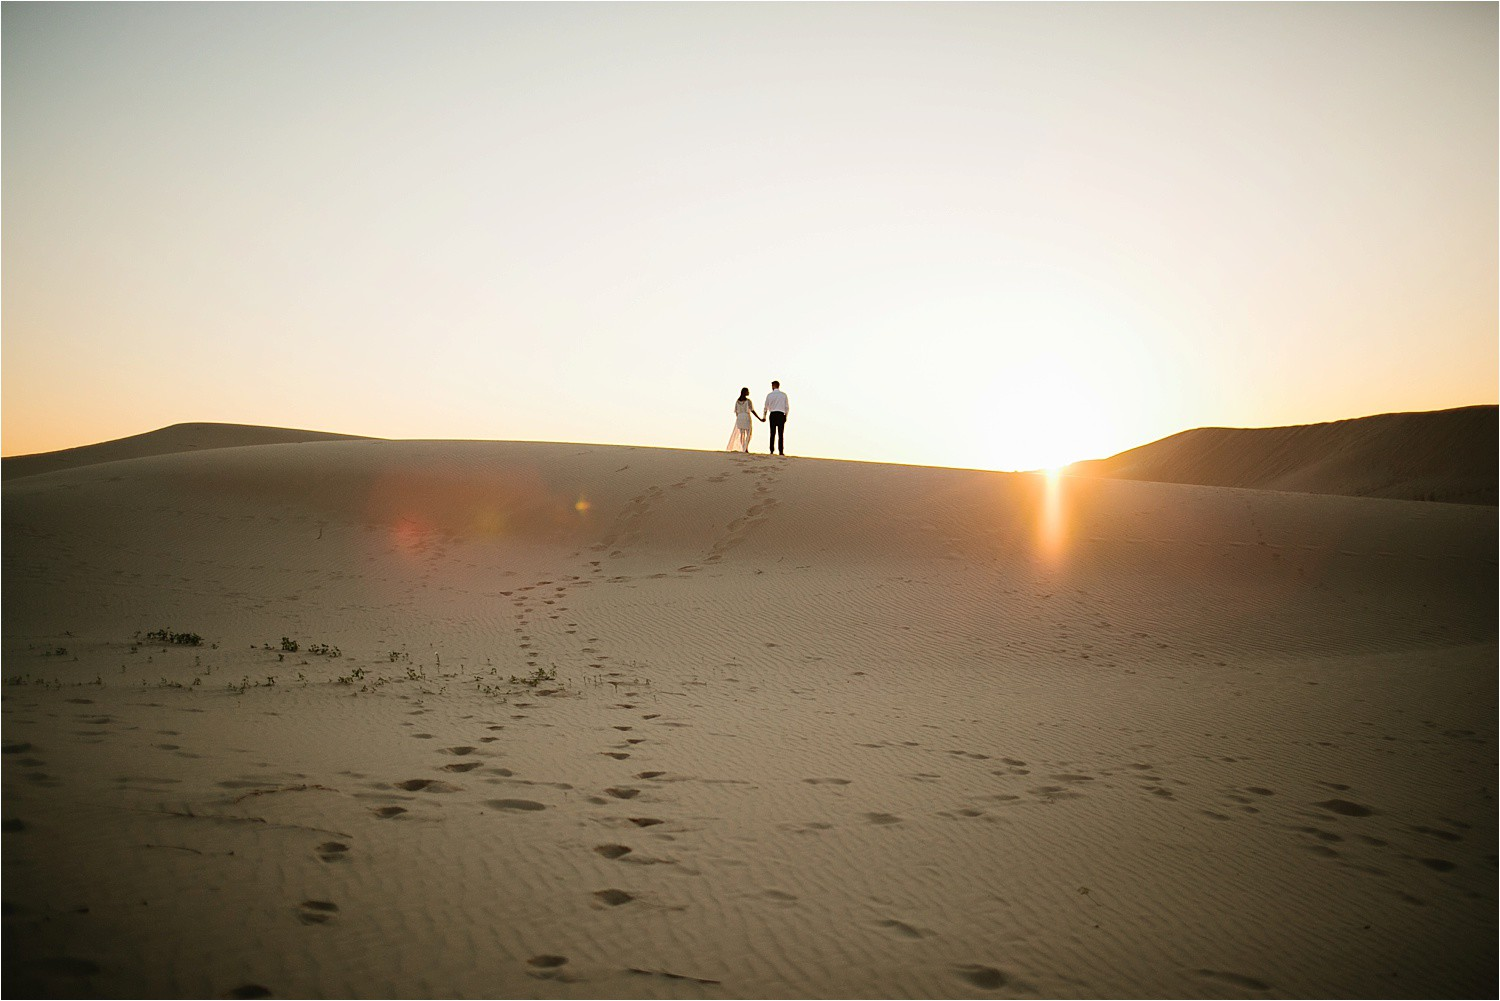 Lauren + Jacob __ a monahans sand dunes engagement session at sunrise by North Texas Wedding Photographer, Rachel Meagan Photography __ 10